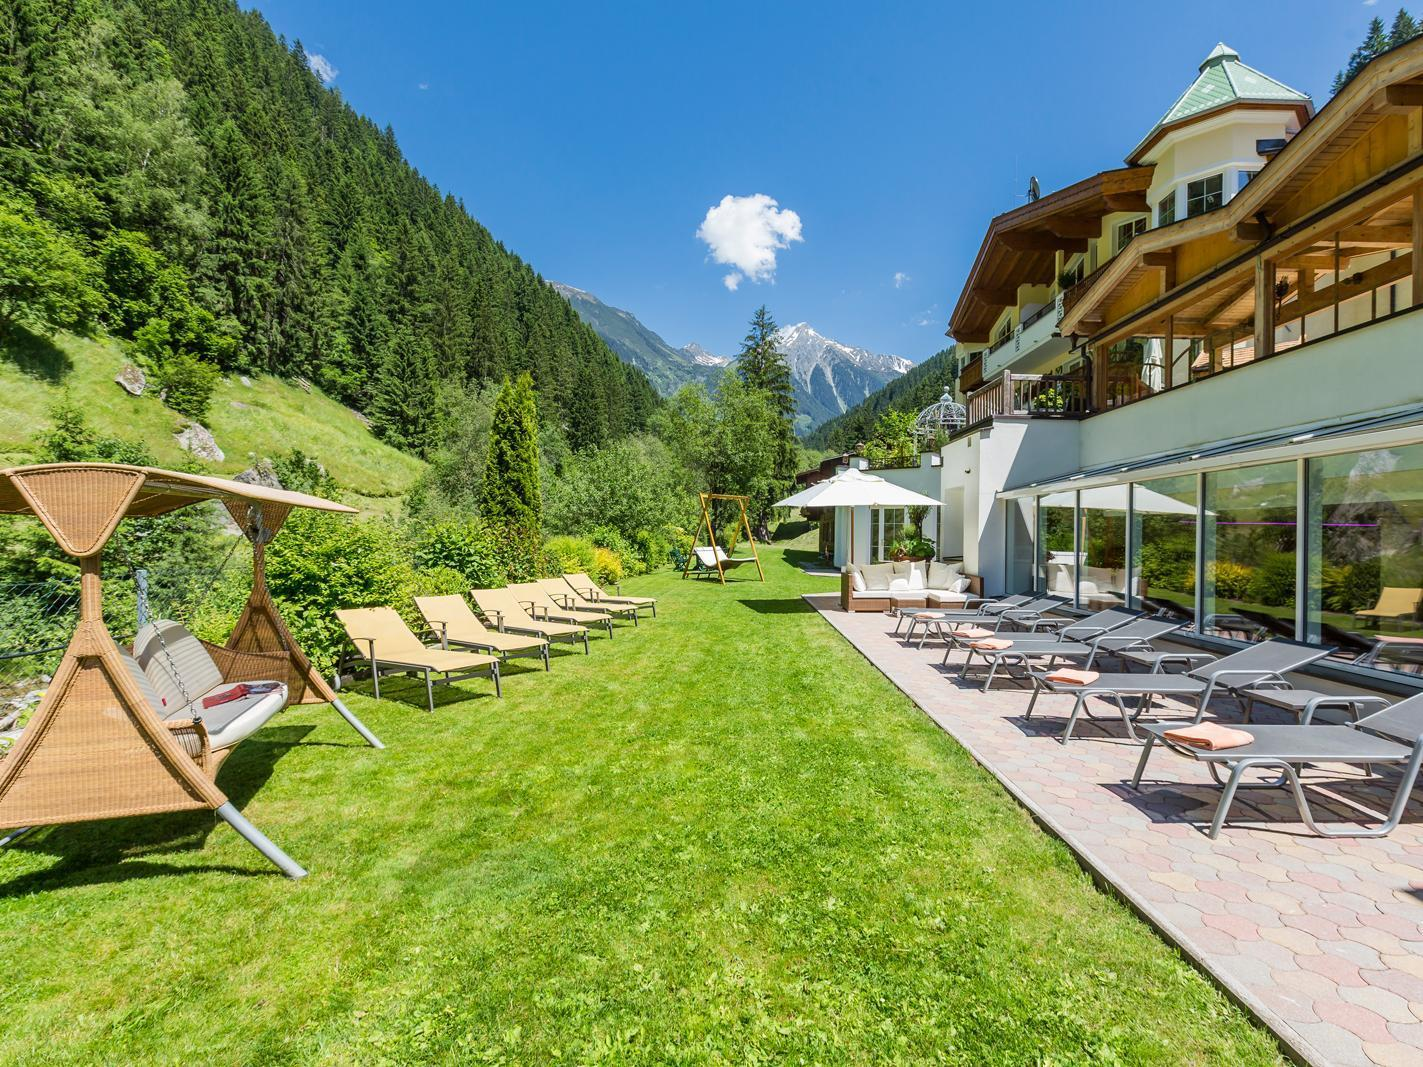 Alpin Lodge das Zillergrund - Mountain Aktiv Relax